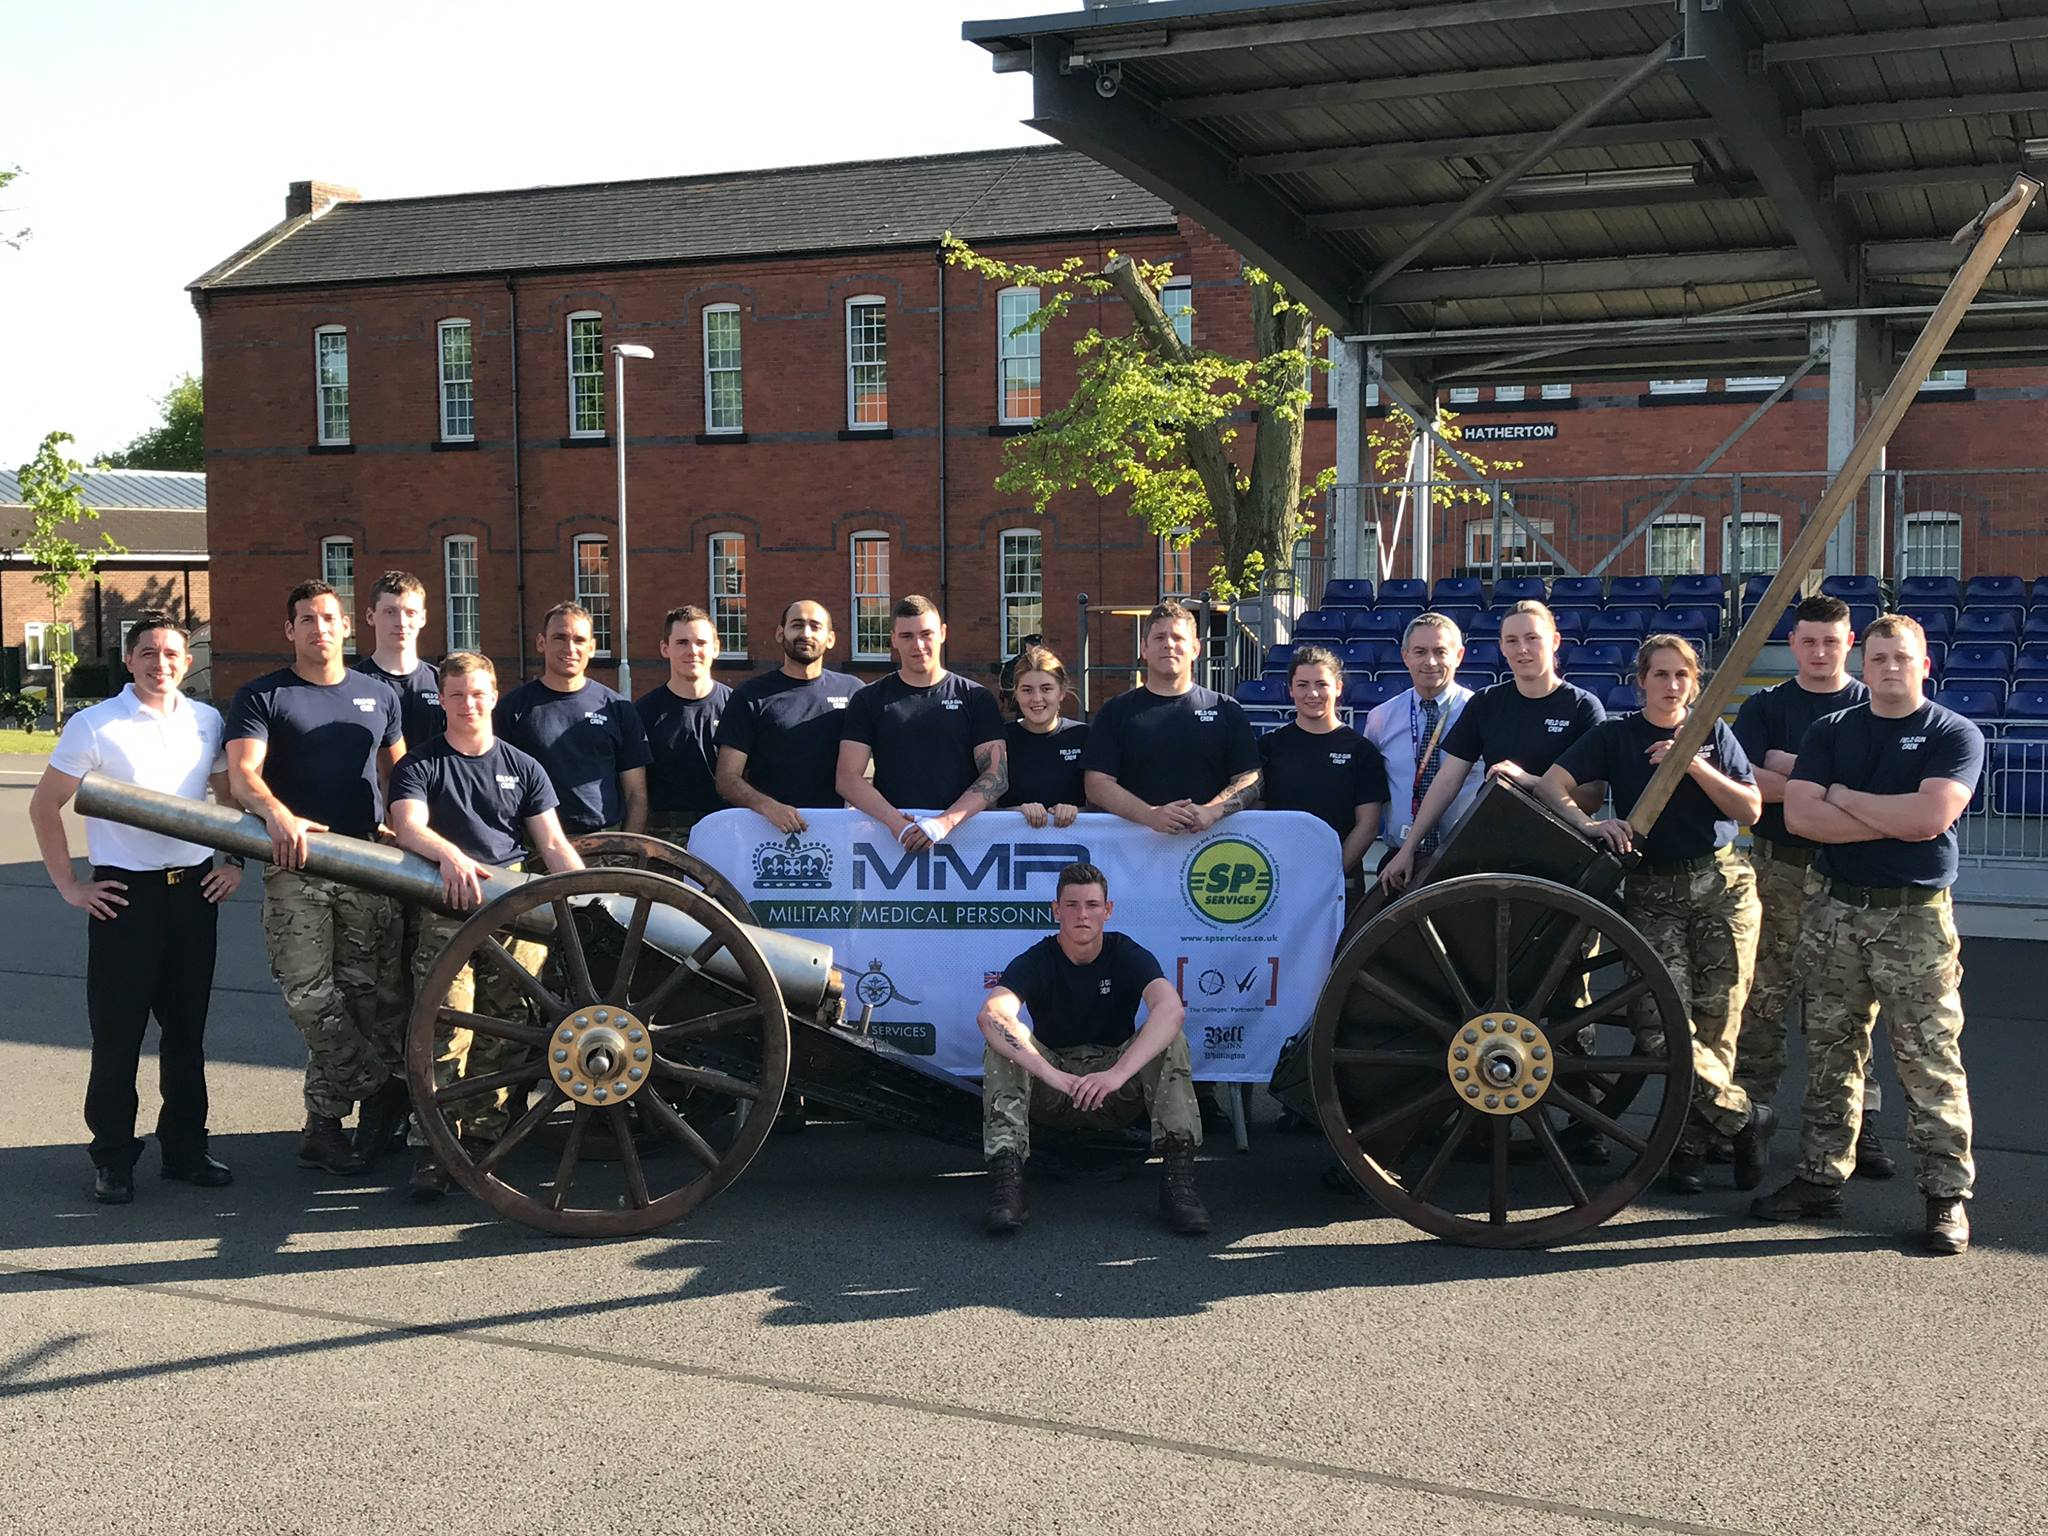 Steve Bray & the 2017 Field Gun Crew from DMS Whittington